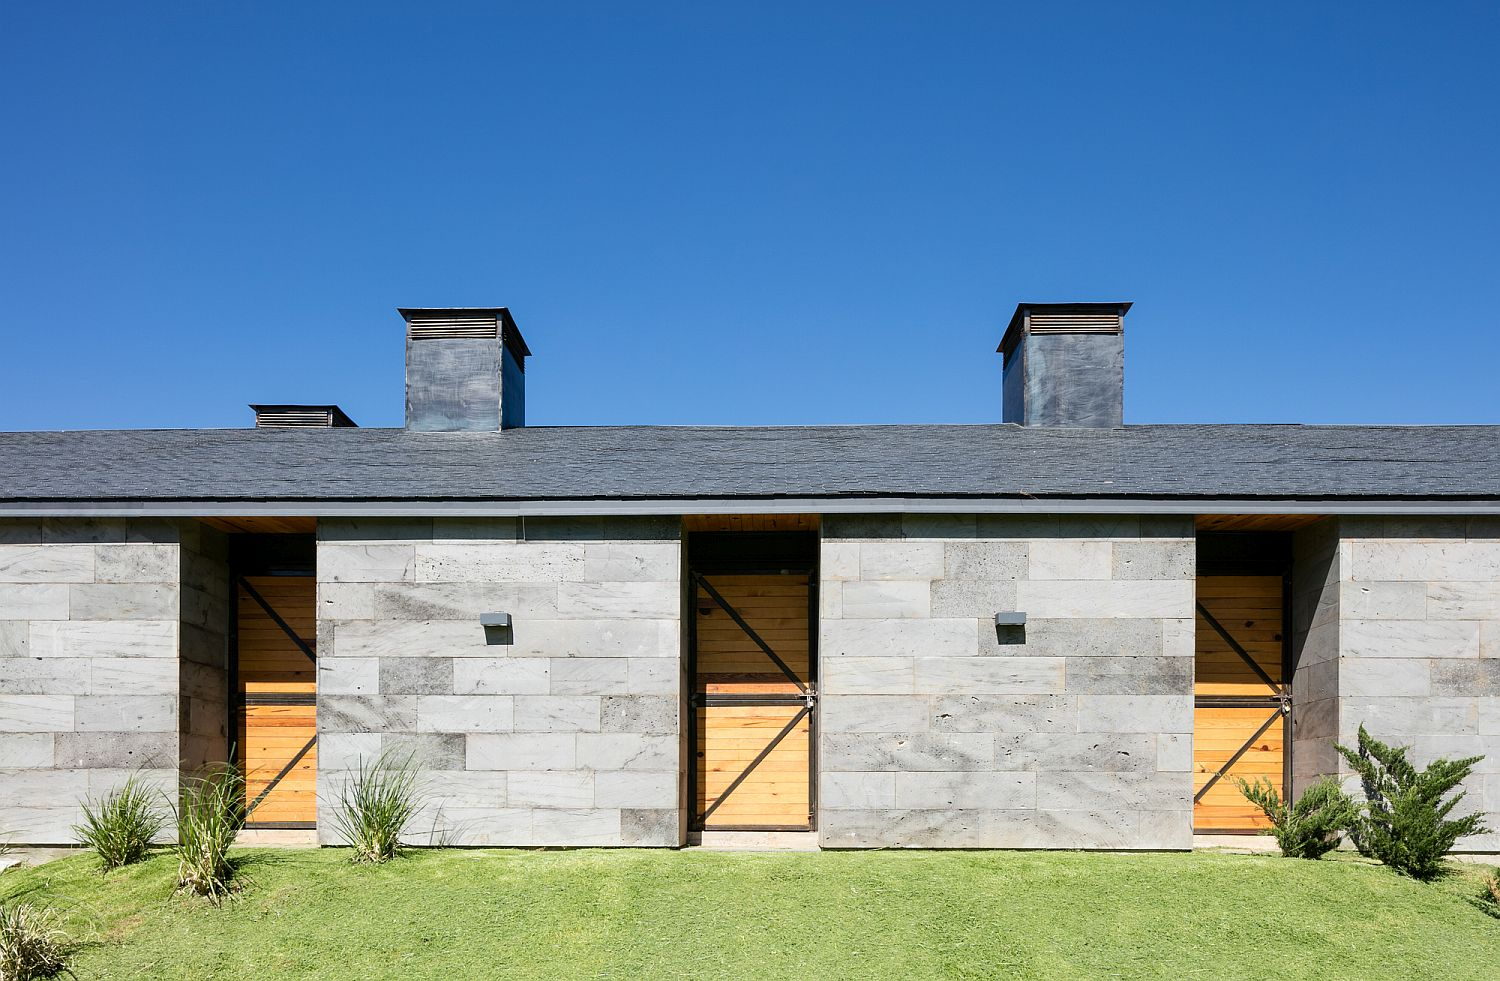 Volcanic rock gives the exterior a polished facade in gray